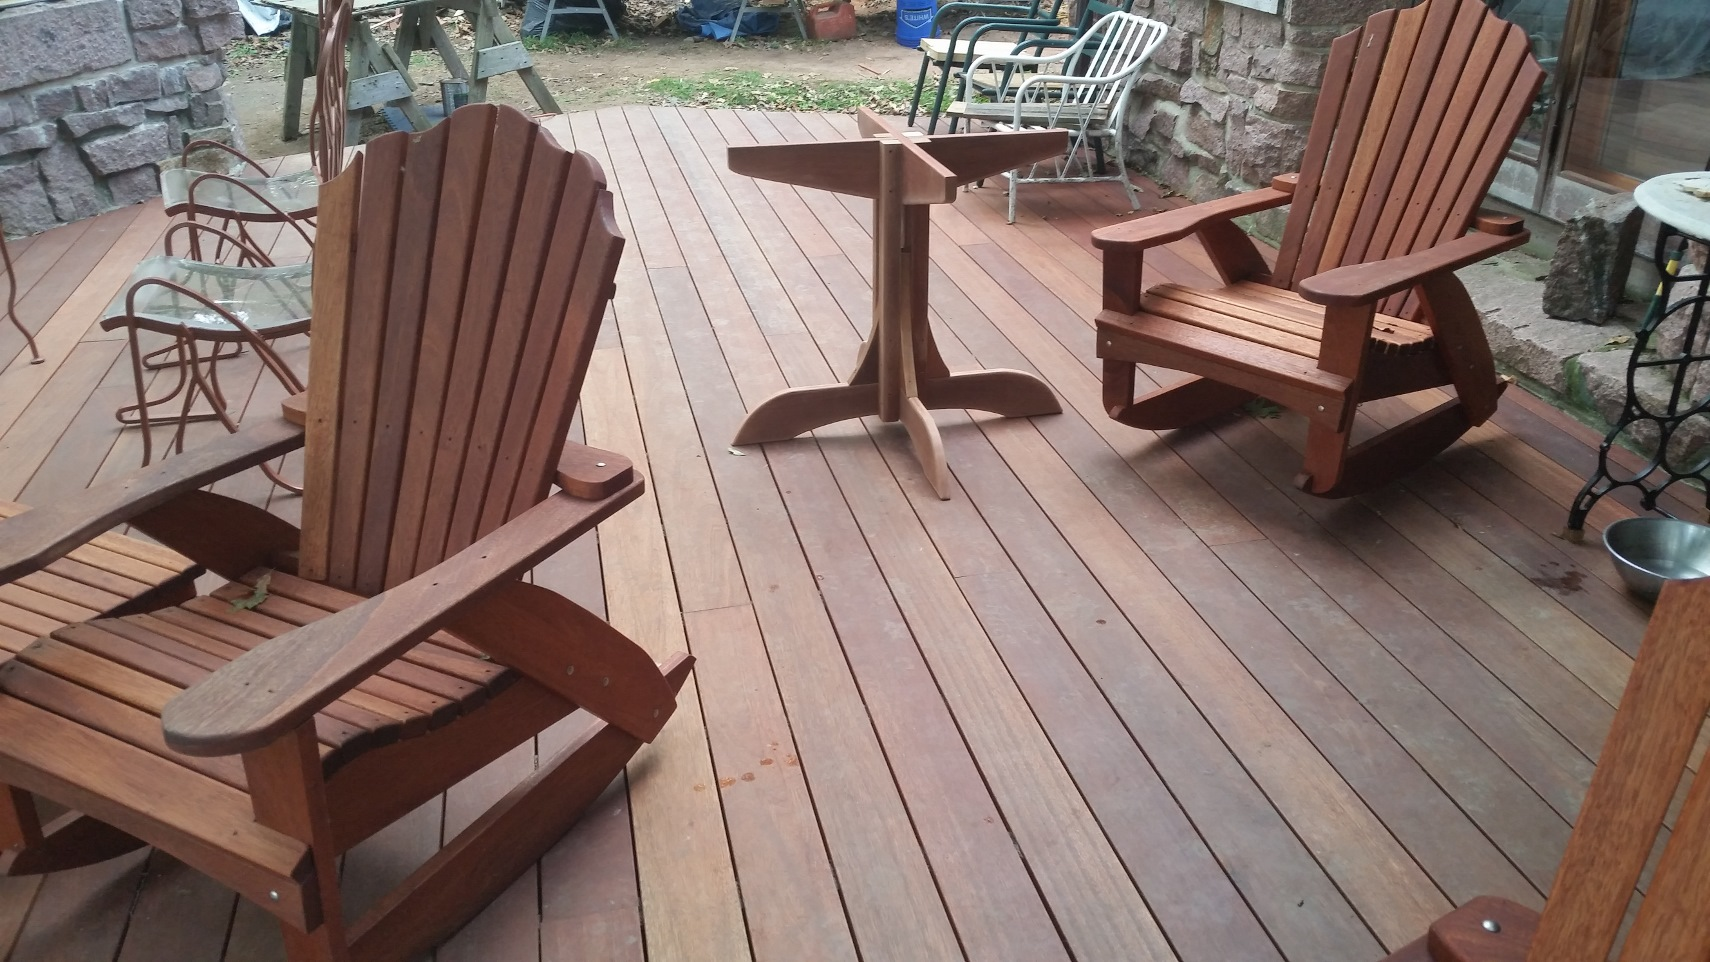 New deck at home